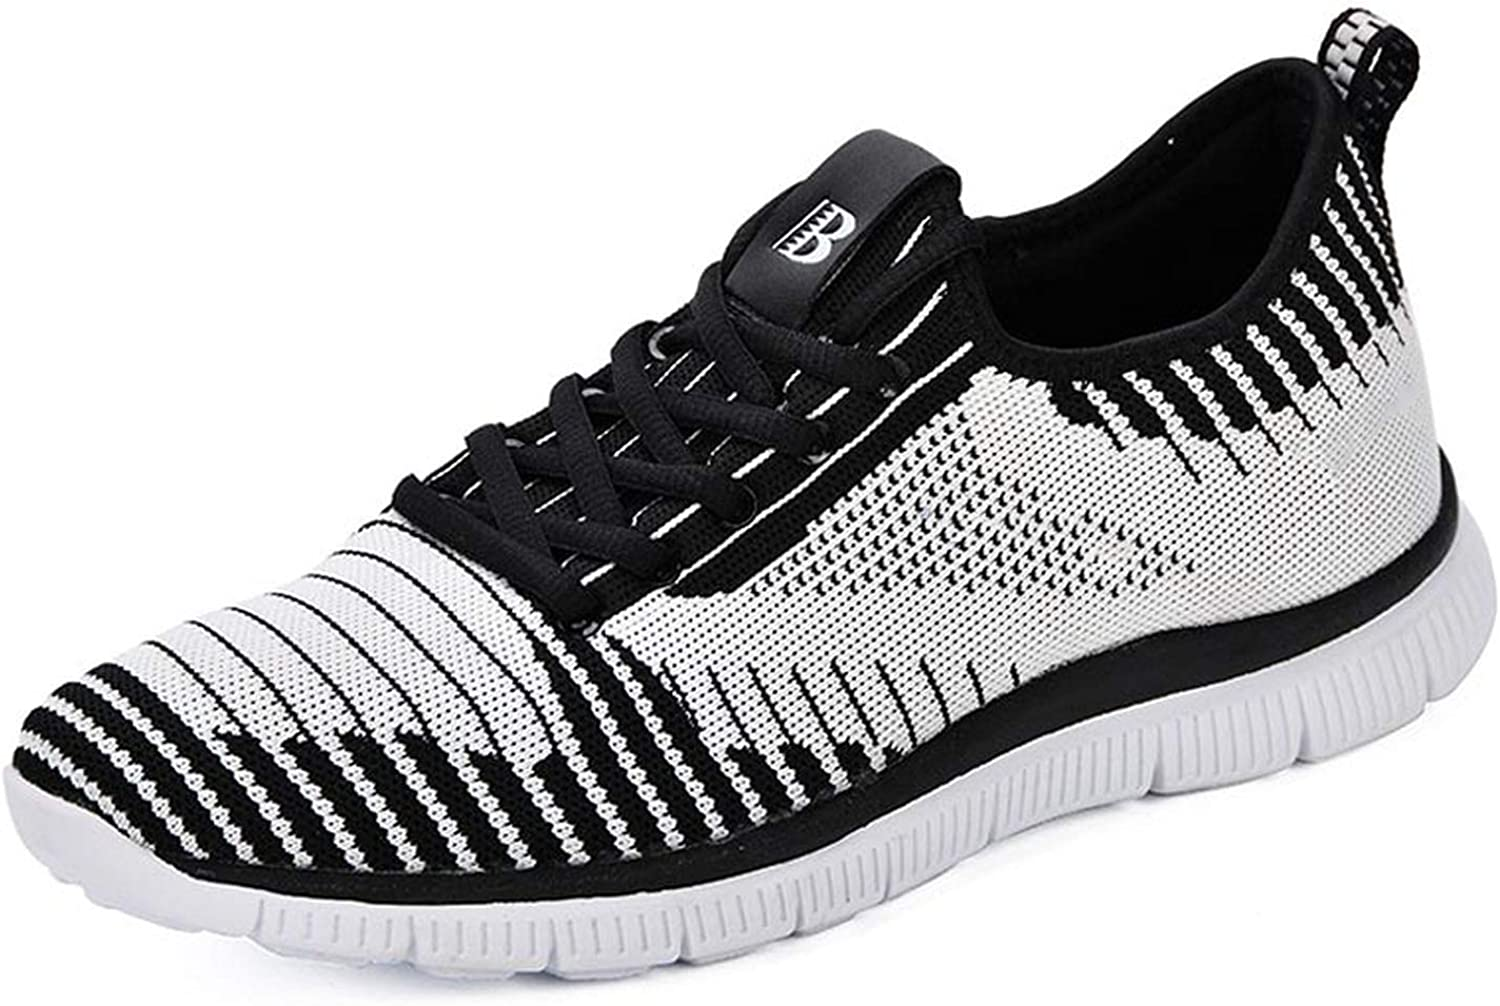 87 shoes Mens Casual Trainers Sneakers